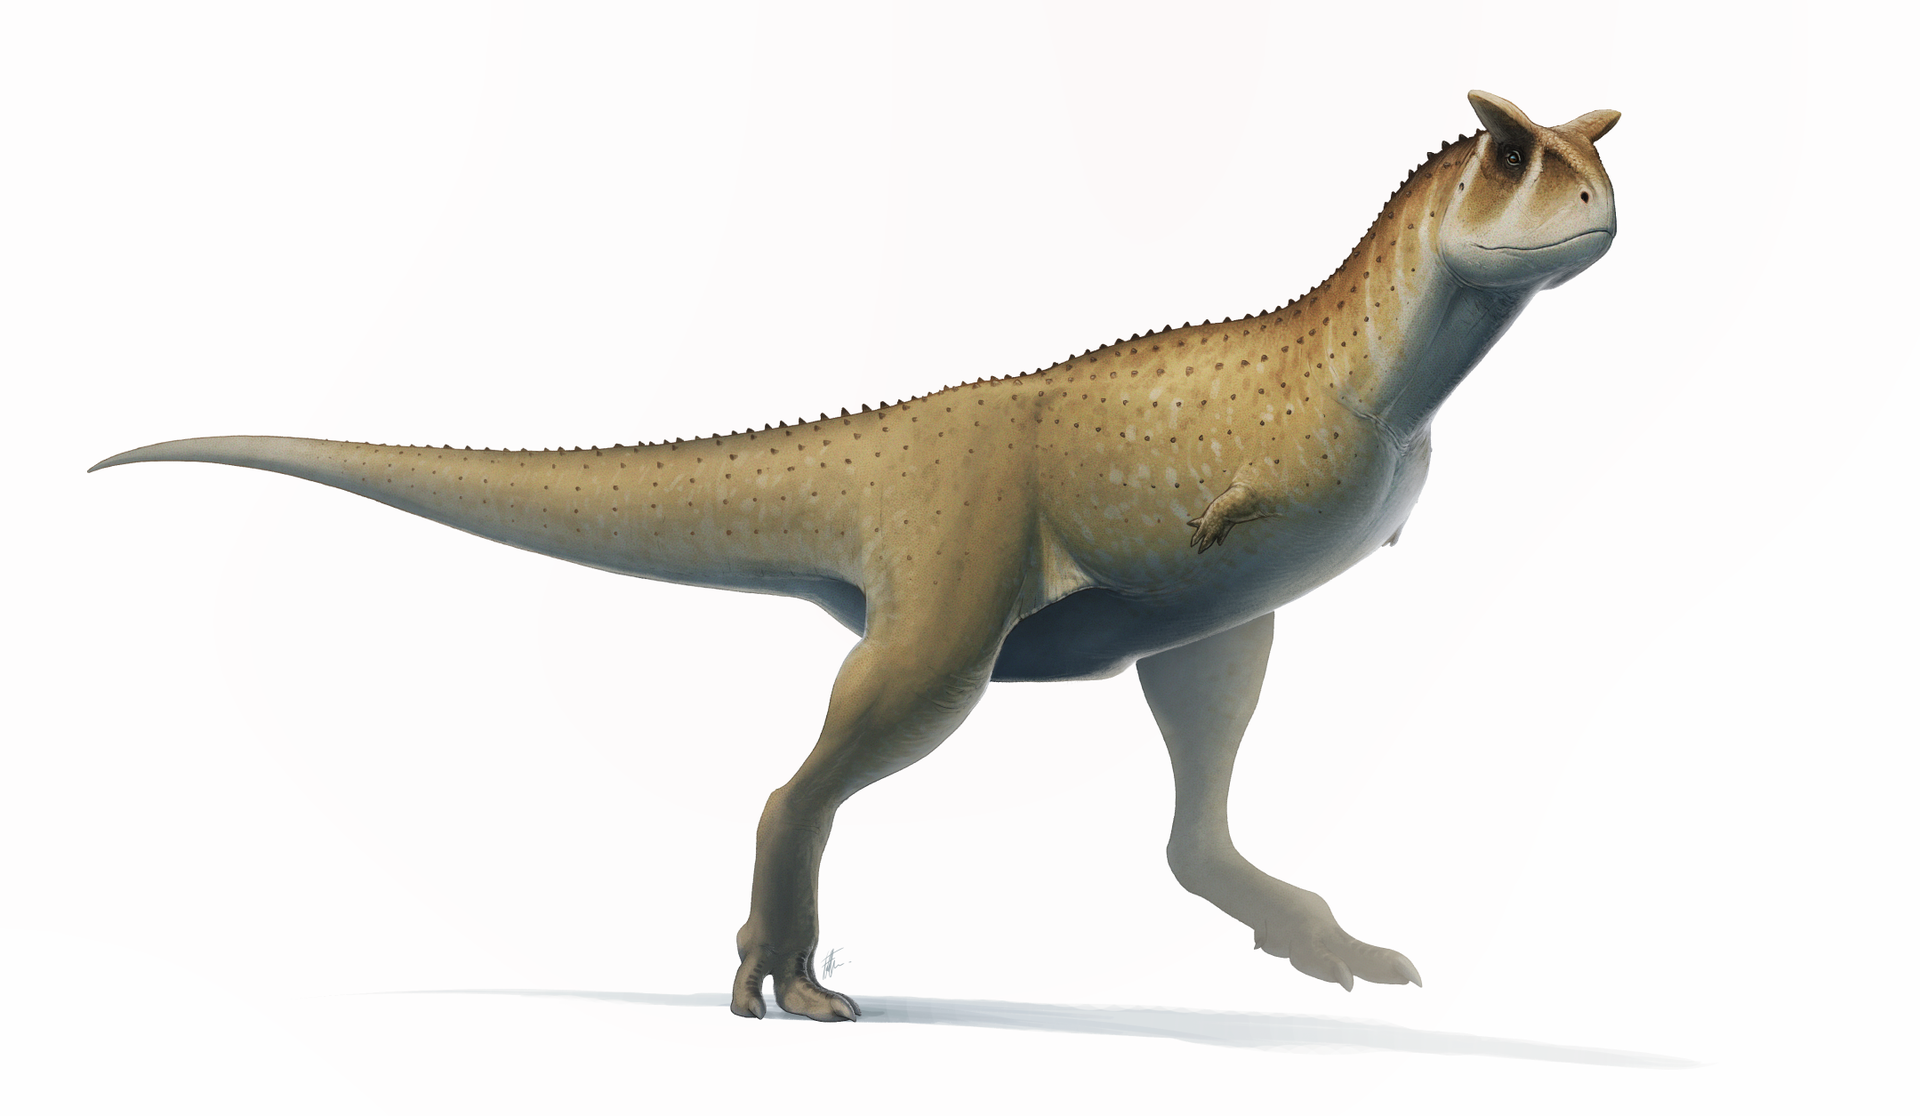 Illustration of Carnotaurus by Fred Wierum